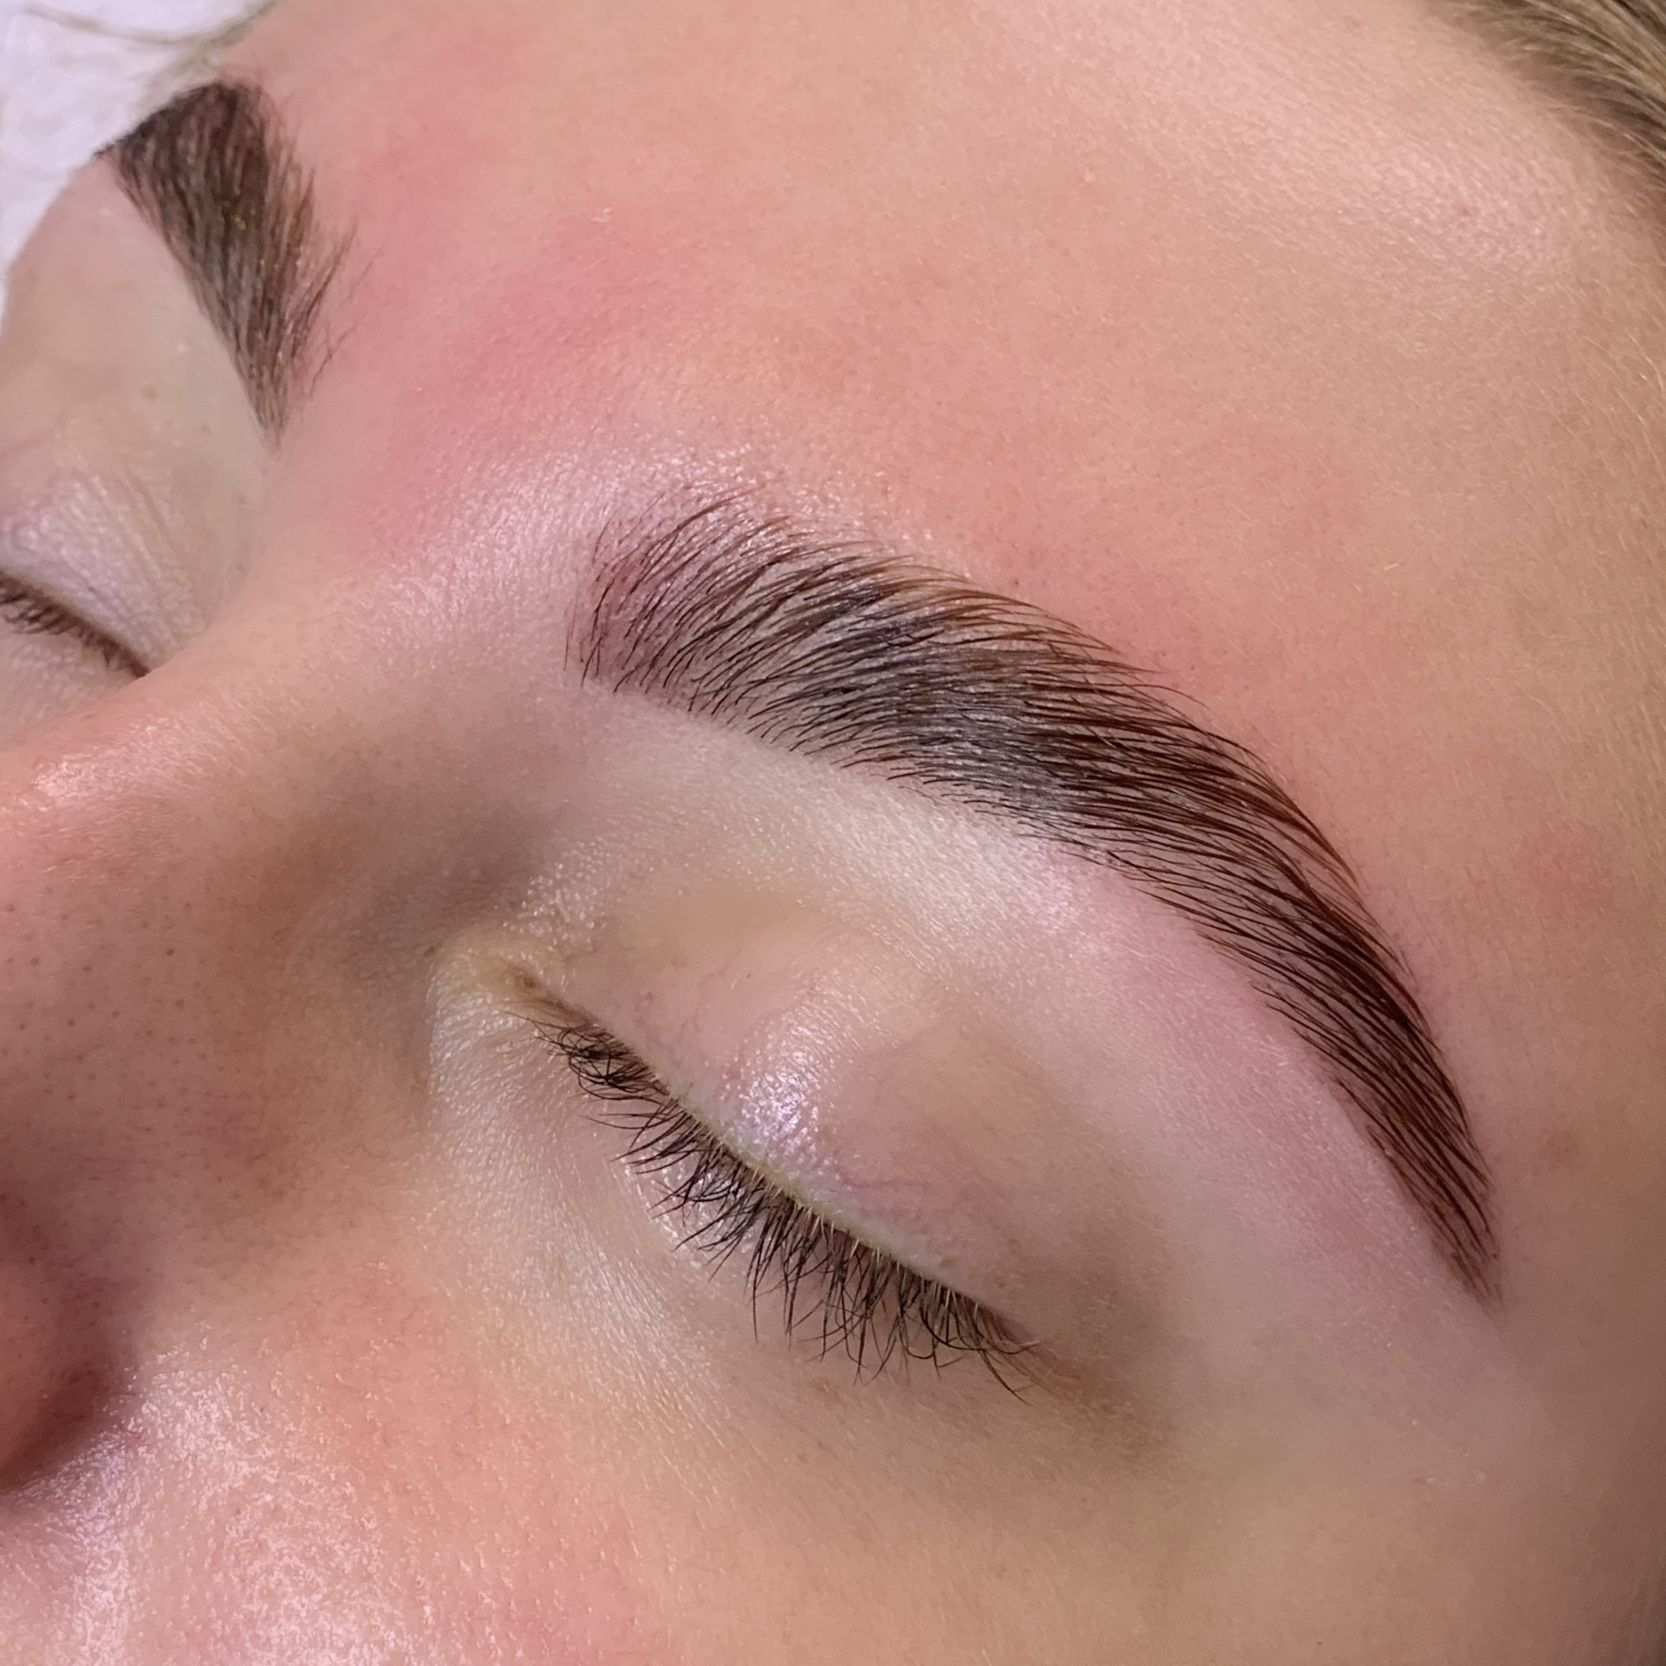 Eyebrow Lamination in 2020 Brows, Eyebrows goals, Eyebrows